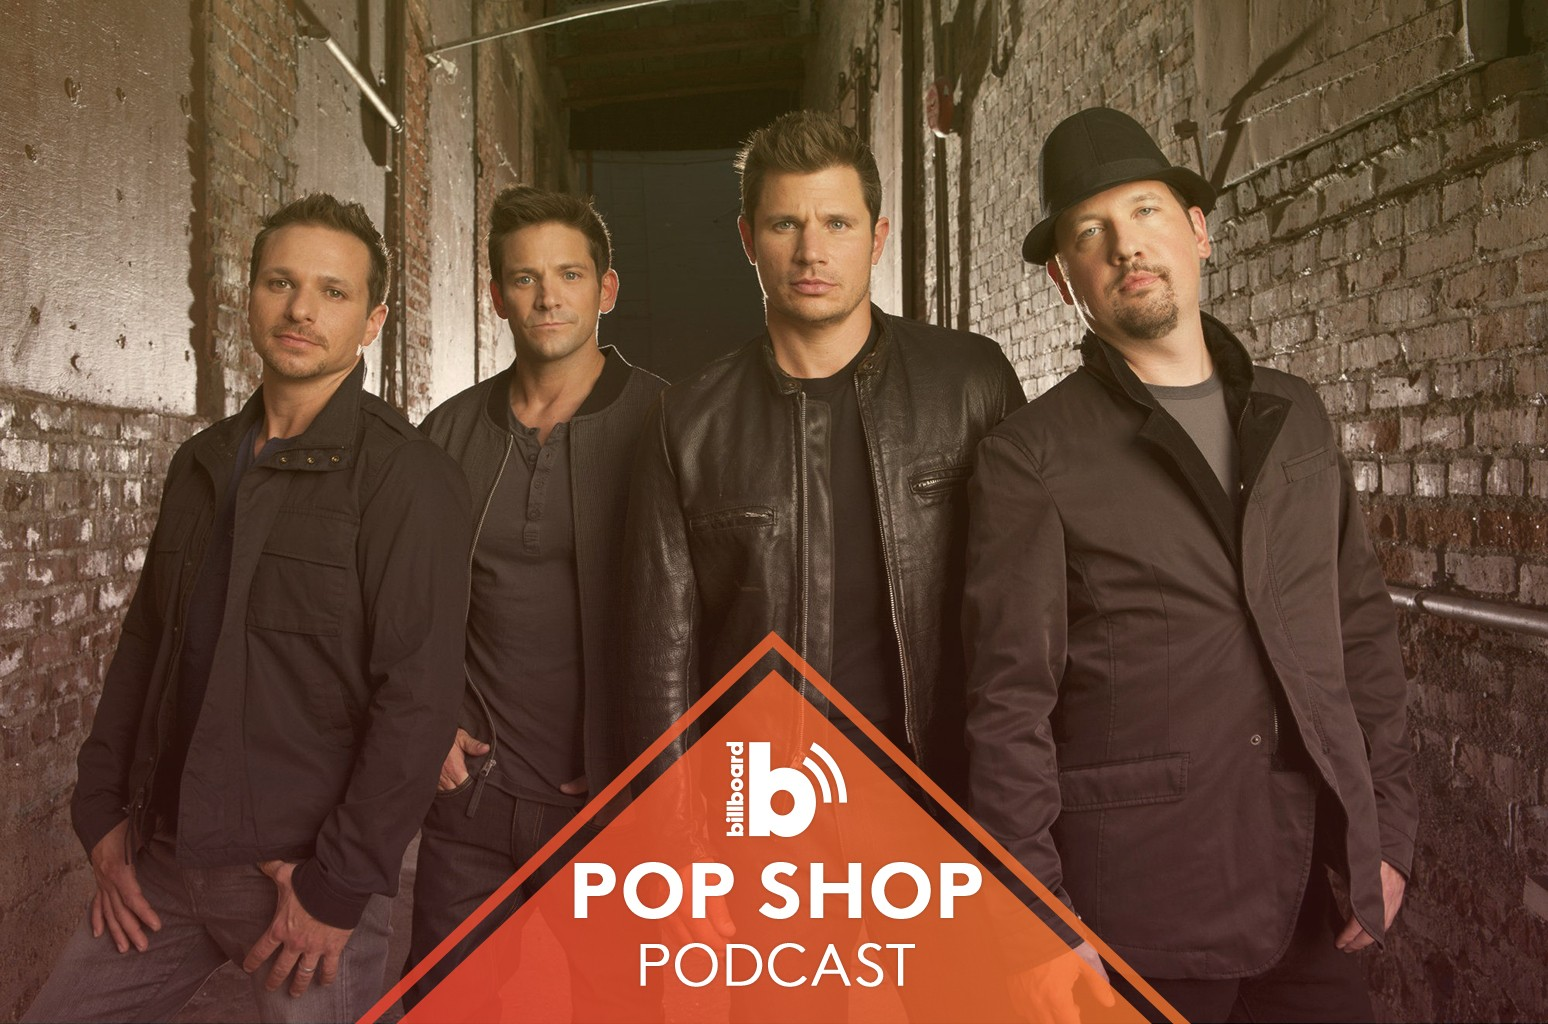 Pop Shop Podcast featuring: 98 Degrees